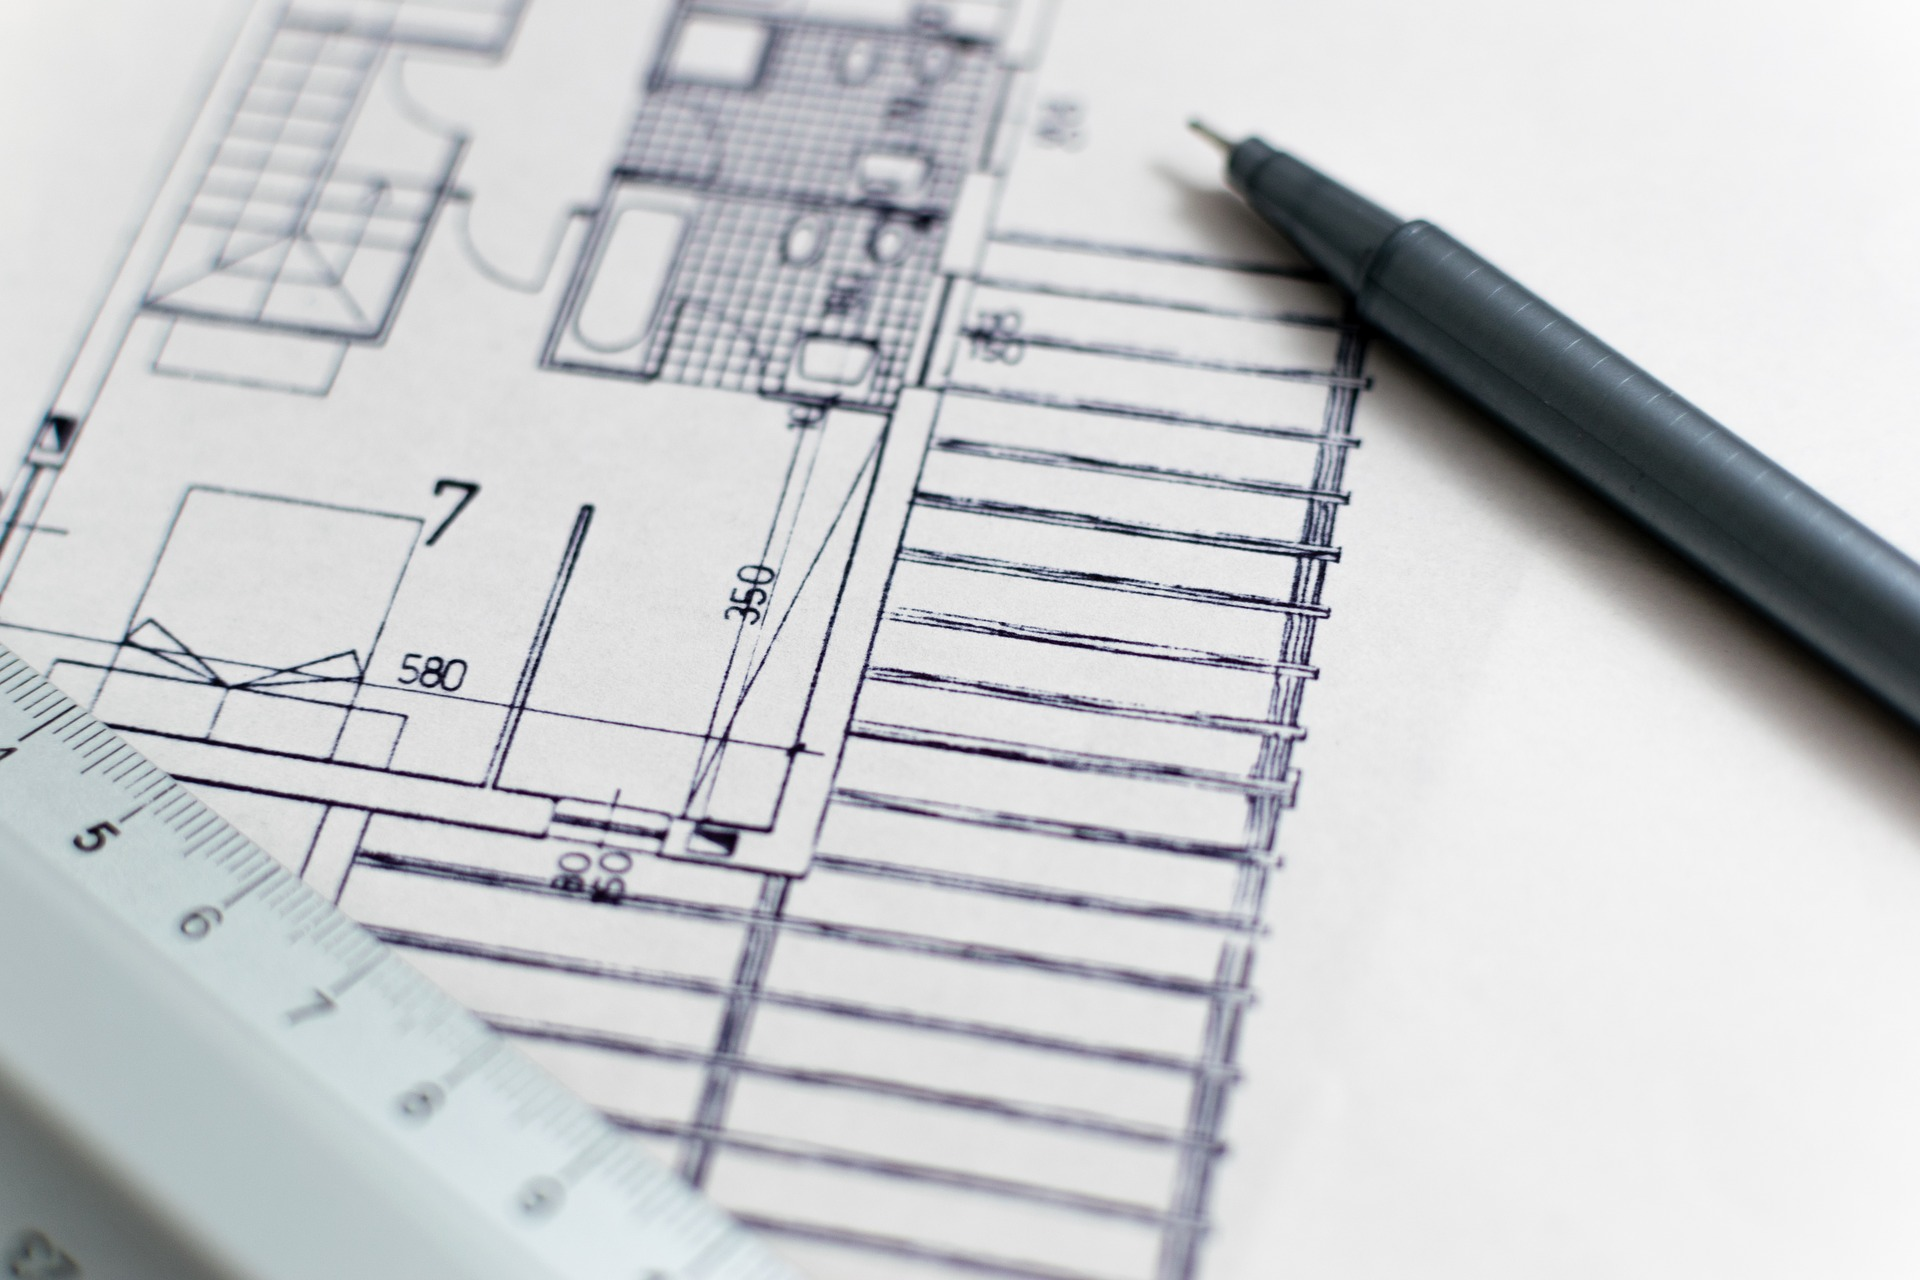 Building a new home - Building a new home is exciting,but can also be a tricky juggling act. Before you call a contractor, lets sit down and talk about the best home loan for a smooth project.